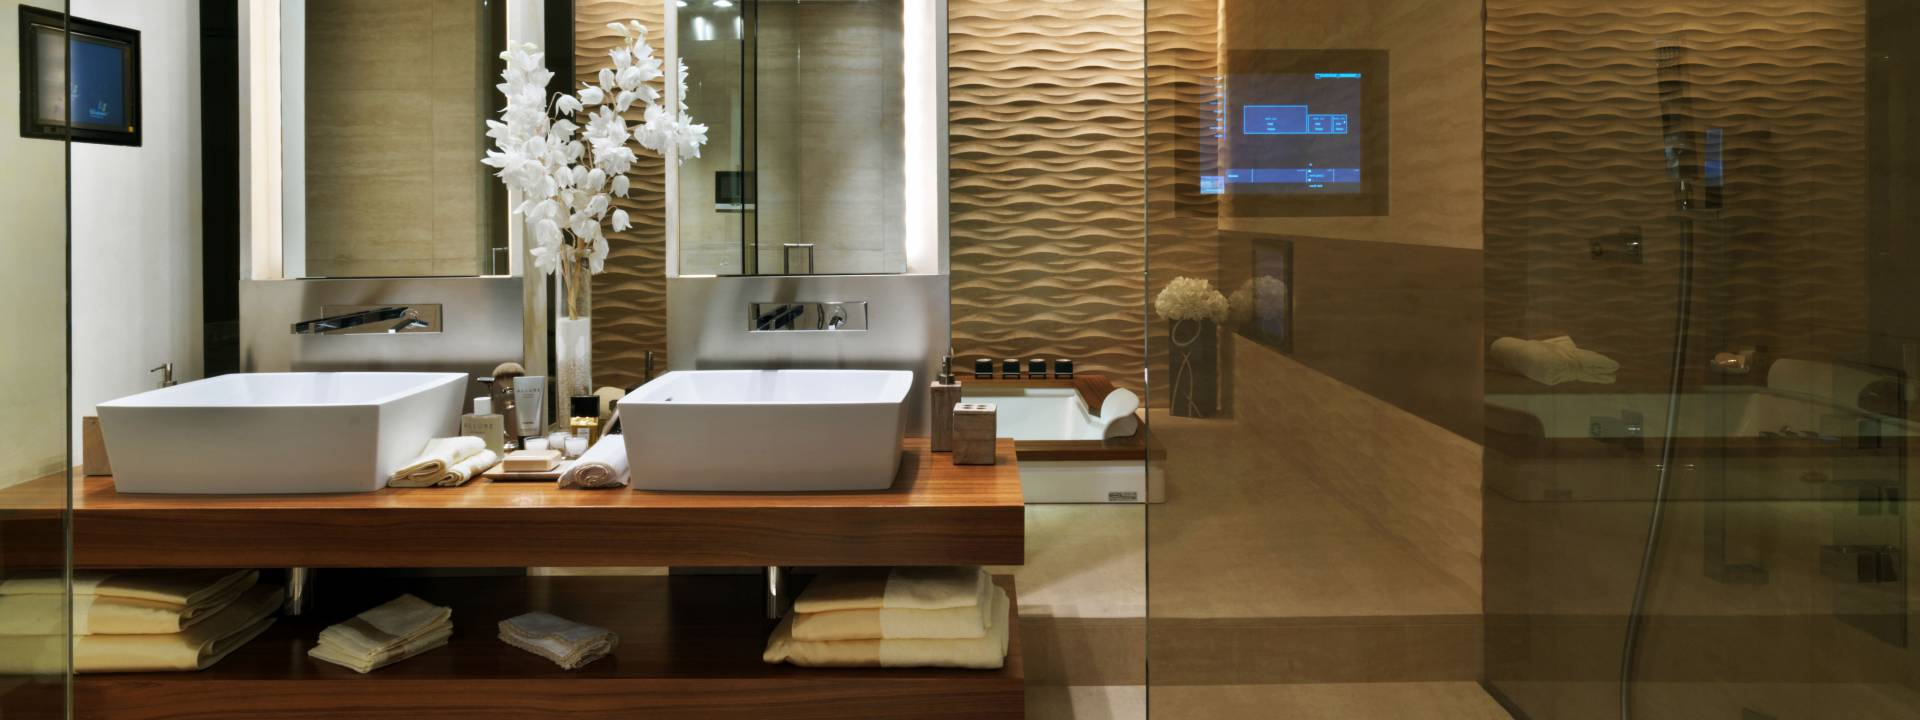 Le Provencale Residences. Luxury bathroom.